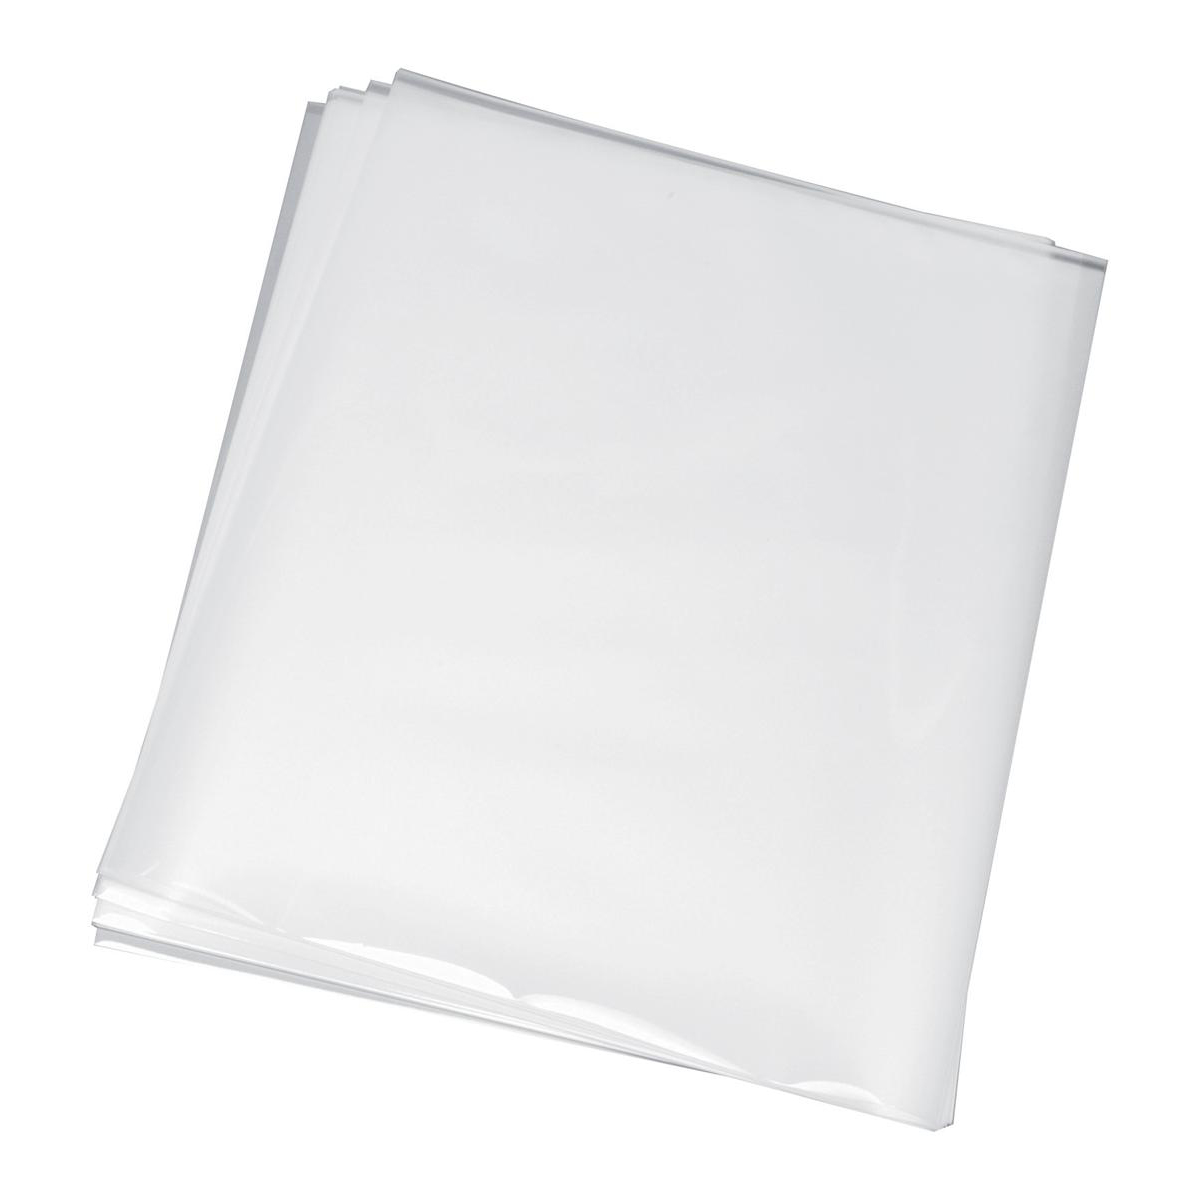 Laminator pouches GBC Laminating Pouches 250 Micron for A5 Ref 3200749 [Pack 100]